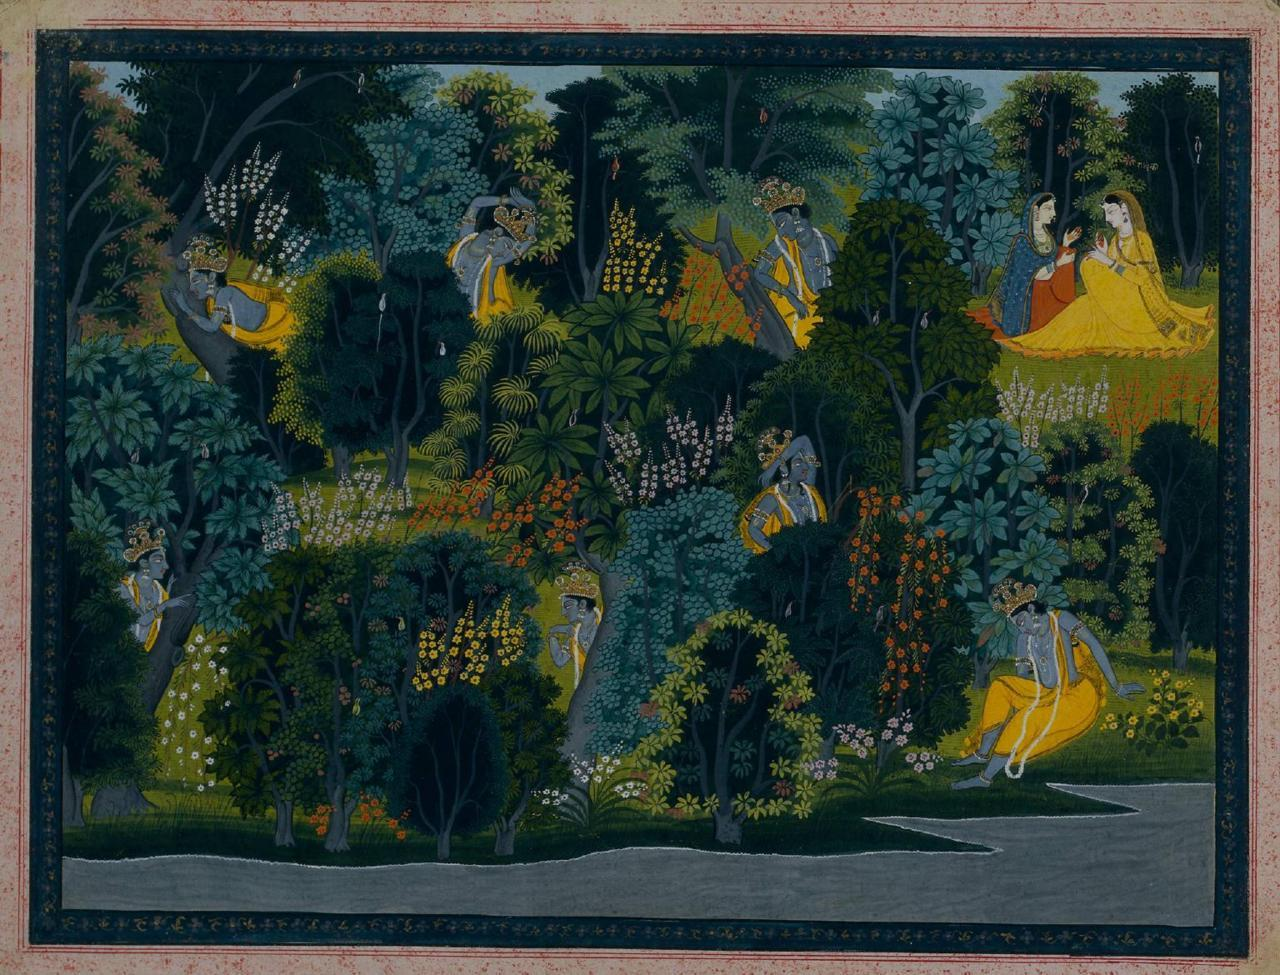 Krishna longing for Radha. India, Pahari Hills, Kangra School. From the 'Lambagraon' Gita Govinda. Via popartmachine